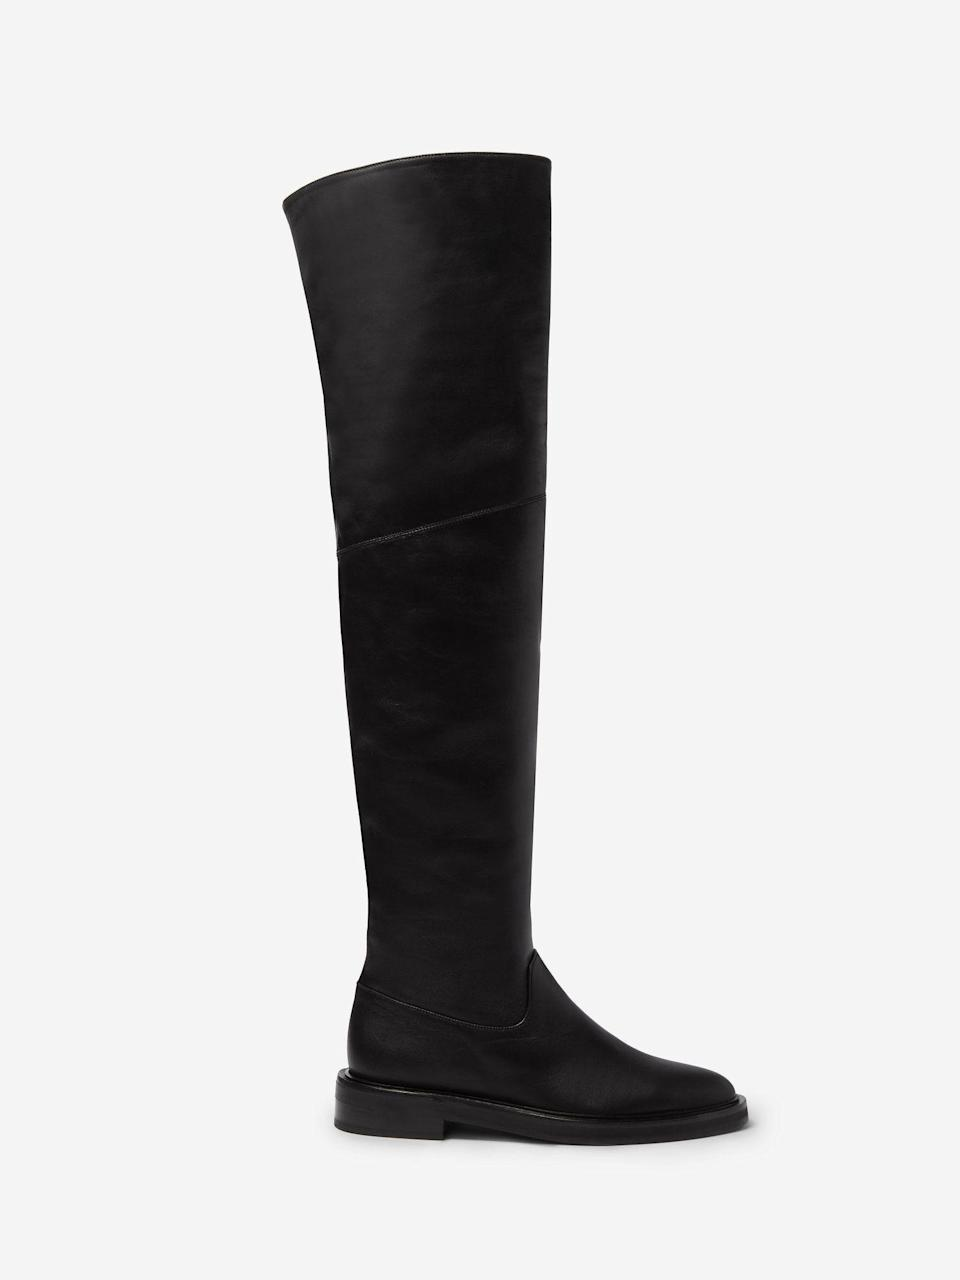 """<p><strong>Tamara Mellon </strong></p><p>tamaramellon.com</p><p><strong>$950.00</strong></p><p><a href=""""https://go.redirectingat.com?id=74968X1596630&url=https%3A%2F%2Fwww.tamaramellon.com%2Fproducts%2Ftempest-nappa-boots&sref=https%3A%2F%2Fwww.harpersbazaar.com%2Ffashion%2Fg34485018%2Fbest-wide-width-boots%2F"""" rel=""""nofollow noopener"""" target=""""_blank"""" data-ylk=""""slk:Shop Now"""" class=""""link rapid-noclick-resp"""">Shop Now</a></p><p>It's all about stretch when shopping for wide-width shoes. And the foot portion is generous when it comes to the Tempest over-knee boot from Tamara Mellon. This style will stretch a bit with wear. </p>"""